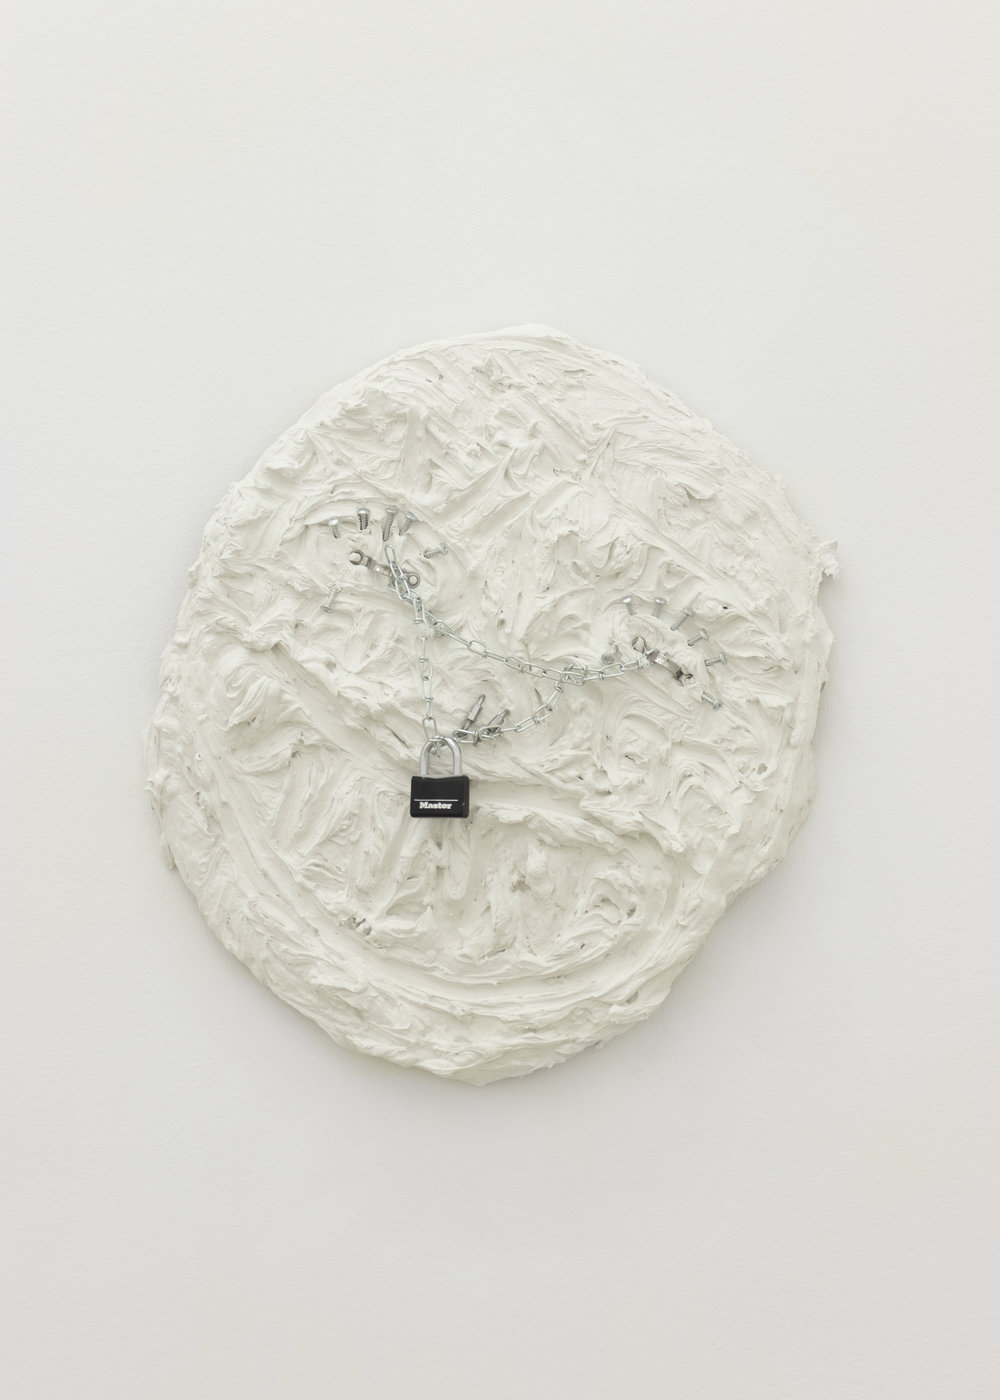 Chloe Siebert,  Hardware Expression , 2018, hardware, plaster, wire, and wood, 22 x 20 in.